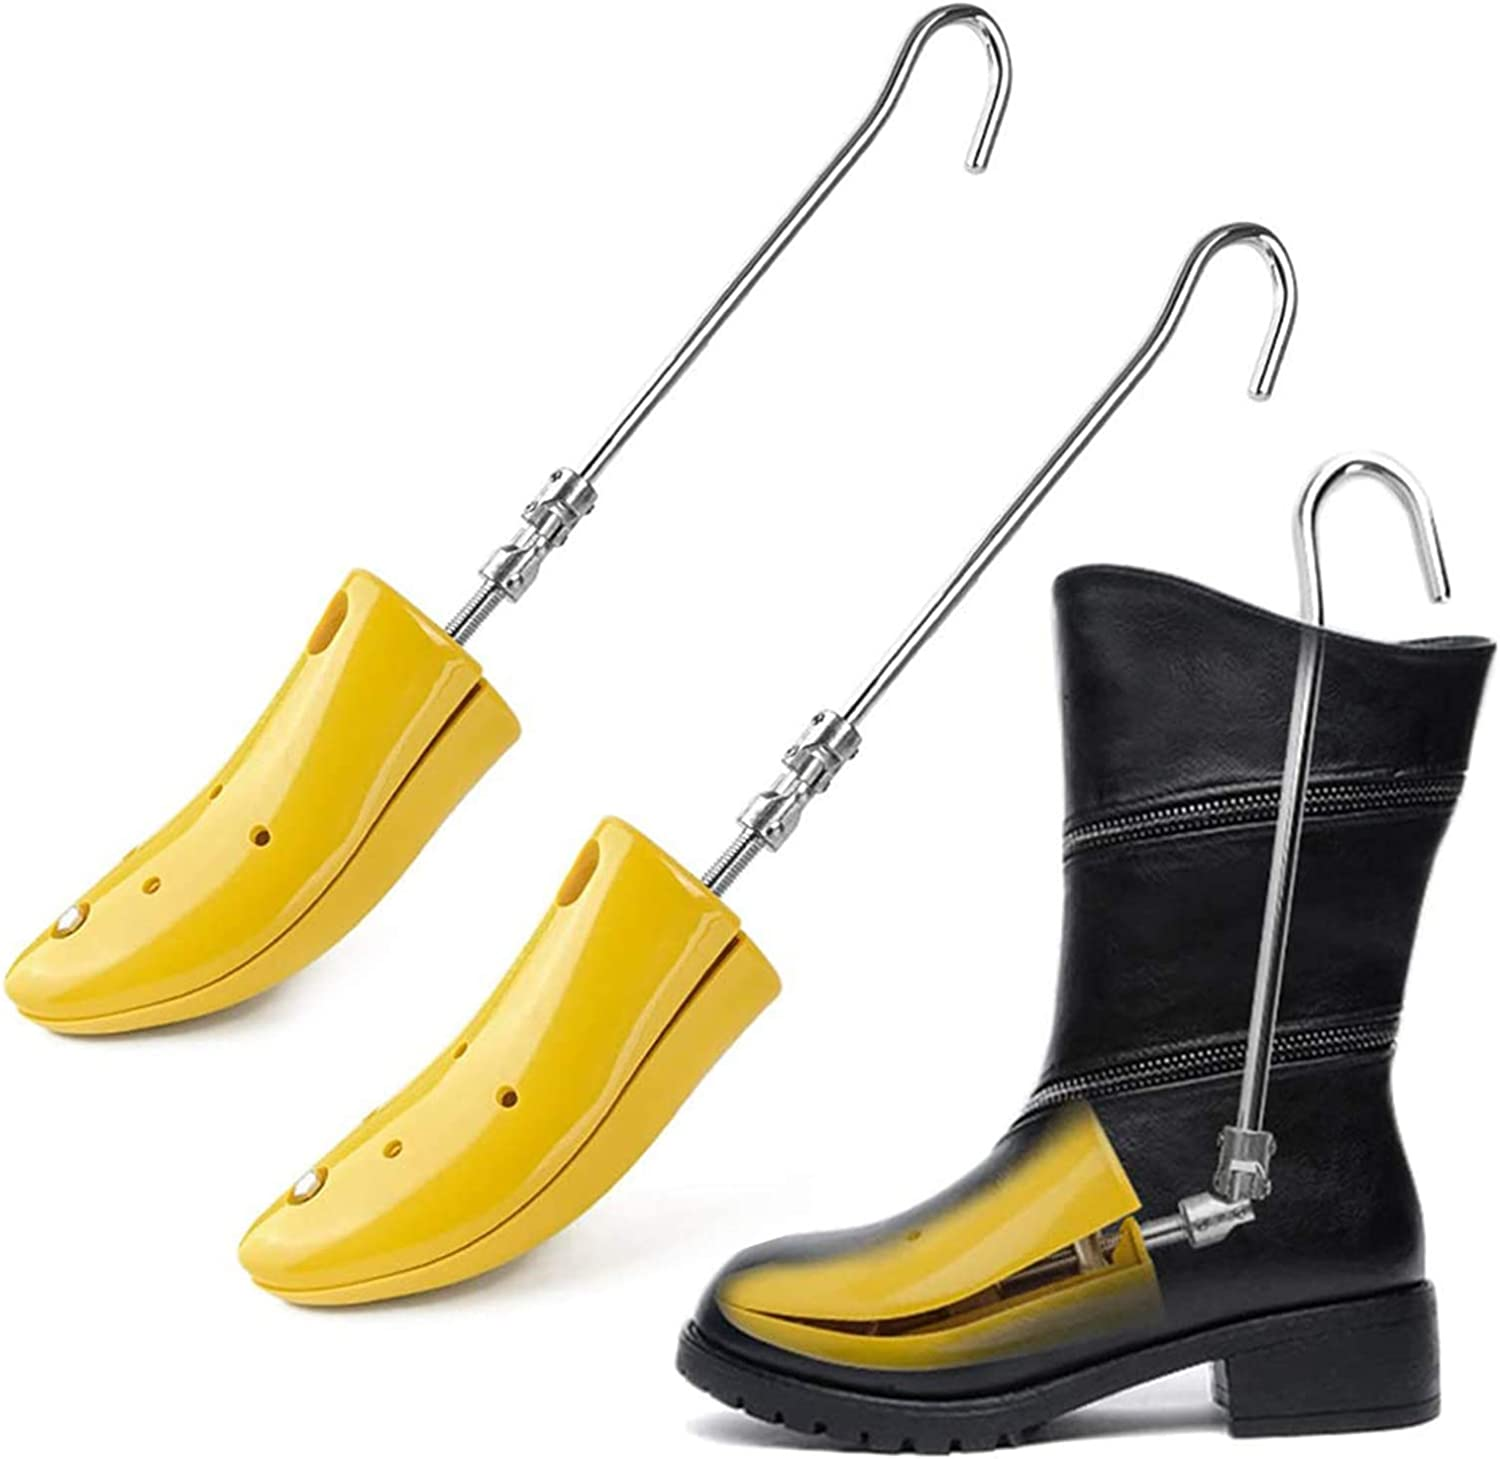 LUCKFY Shoe Stretcher for Boots